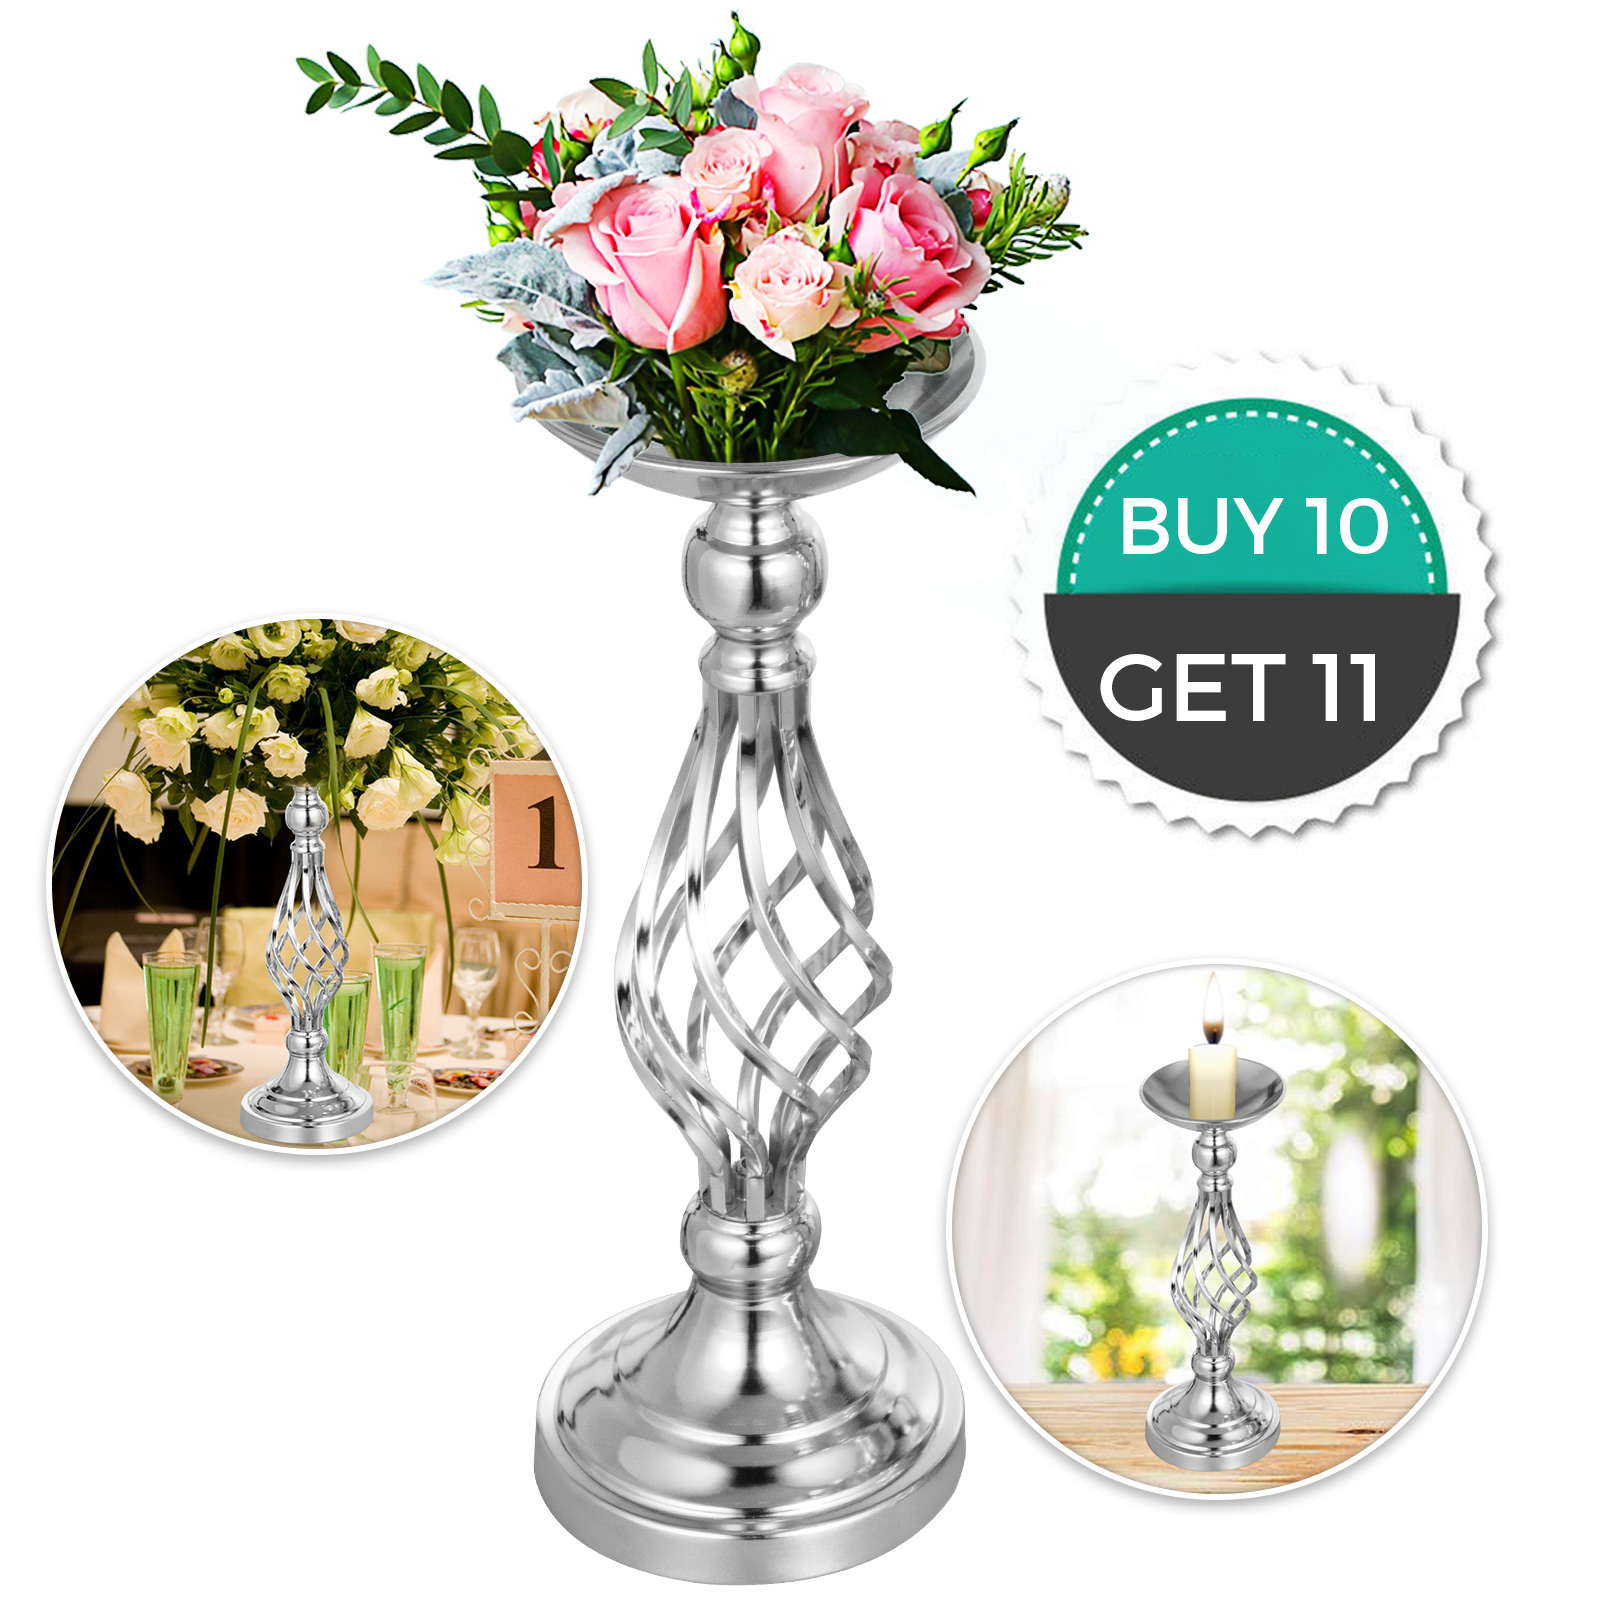 Flower-Rack-for-Wedding-Metal-Candle-Stand-4-11pcs-Centerpiece-Flower-Vase thumbnail 37